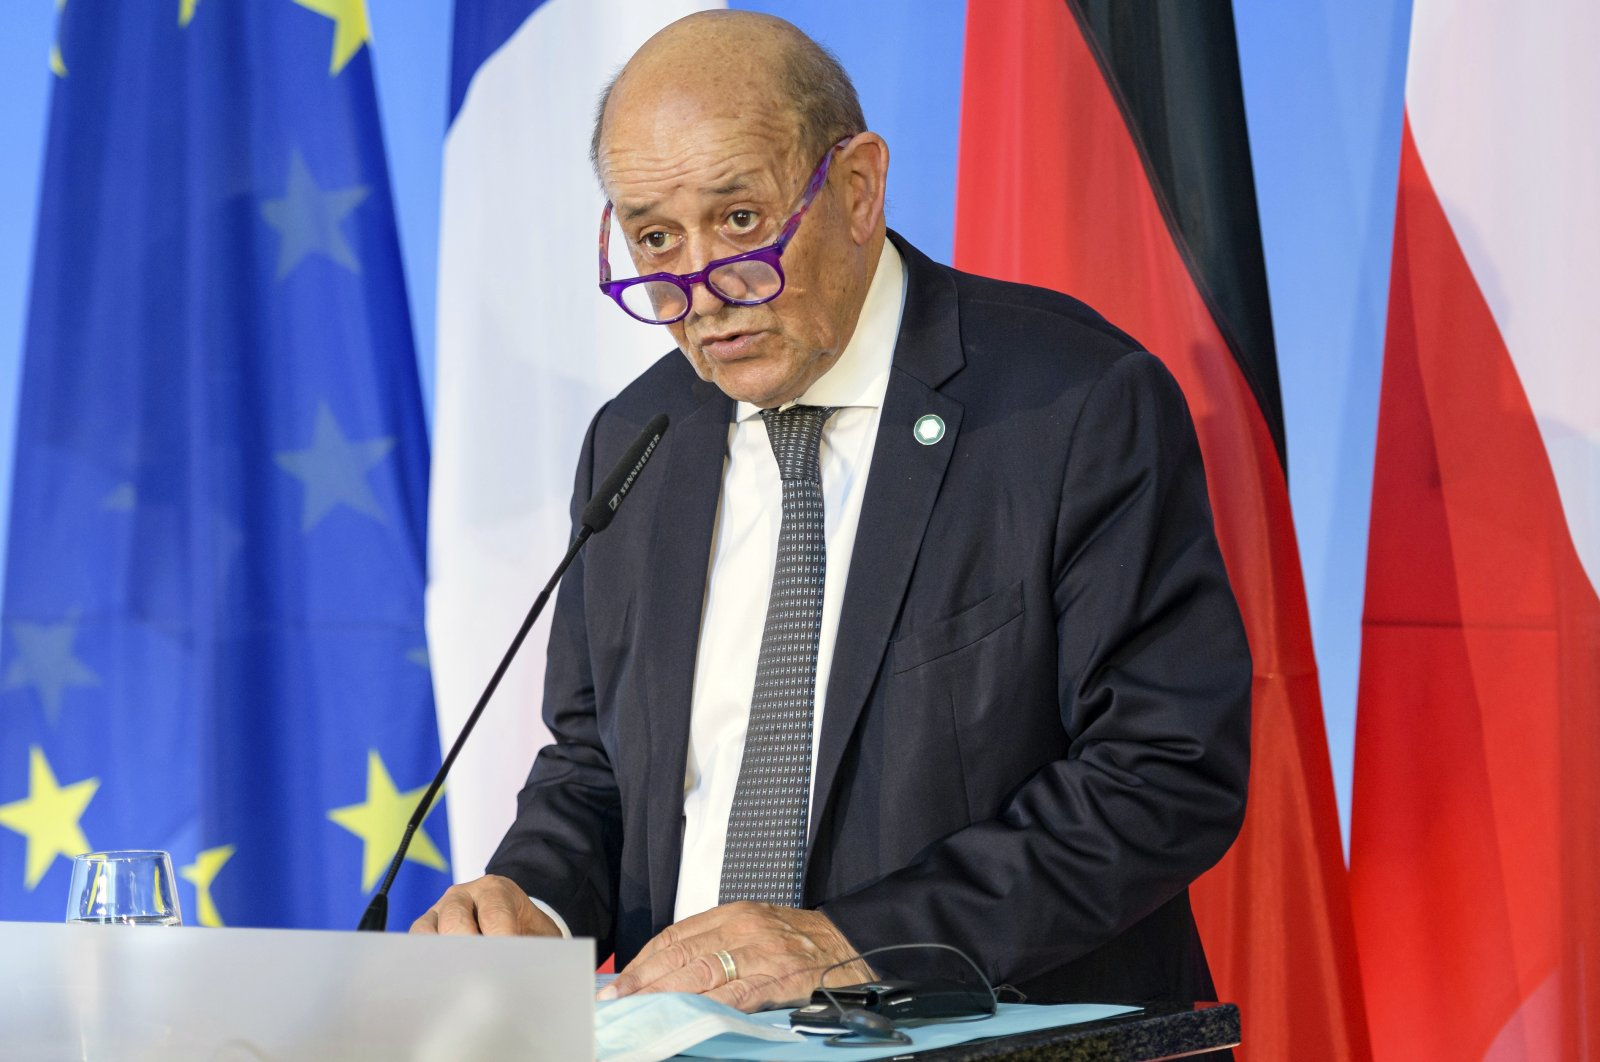 French Foreign Minister Jean-Yves Le Drian speaks in Weimar, Germany, Sept. 10, 2021. (Jens Schlueter/Pool Photo via AP)